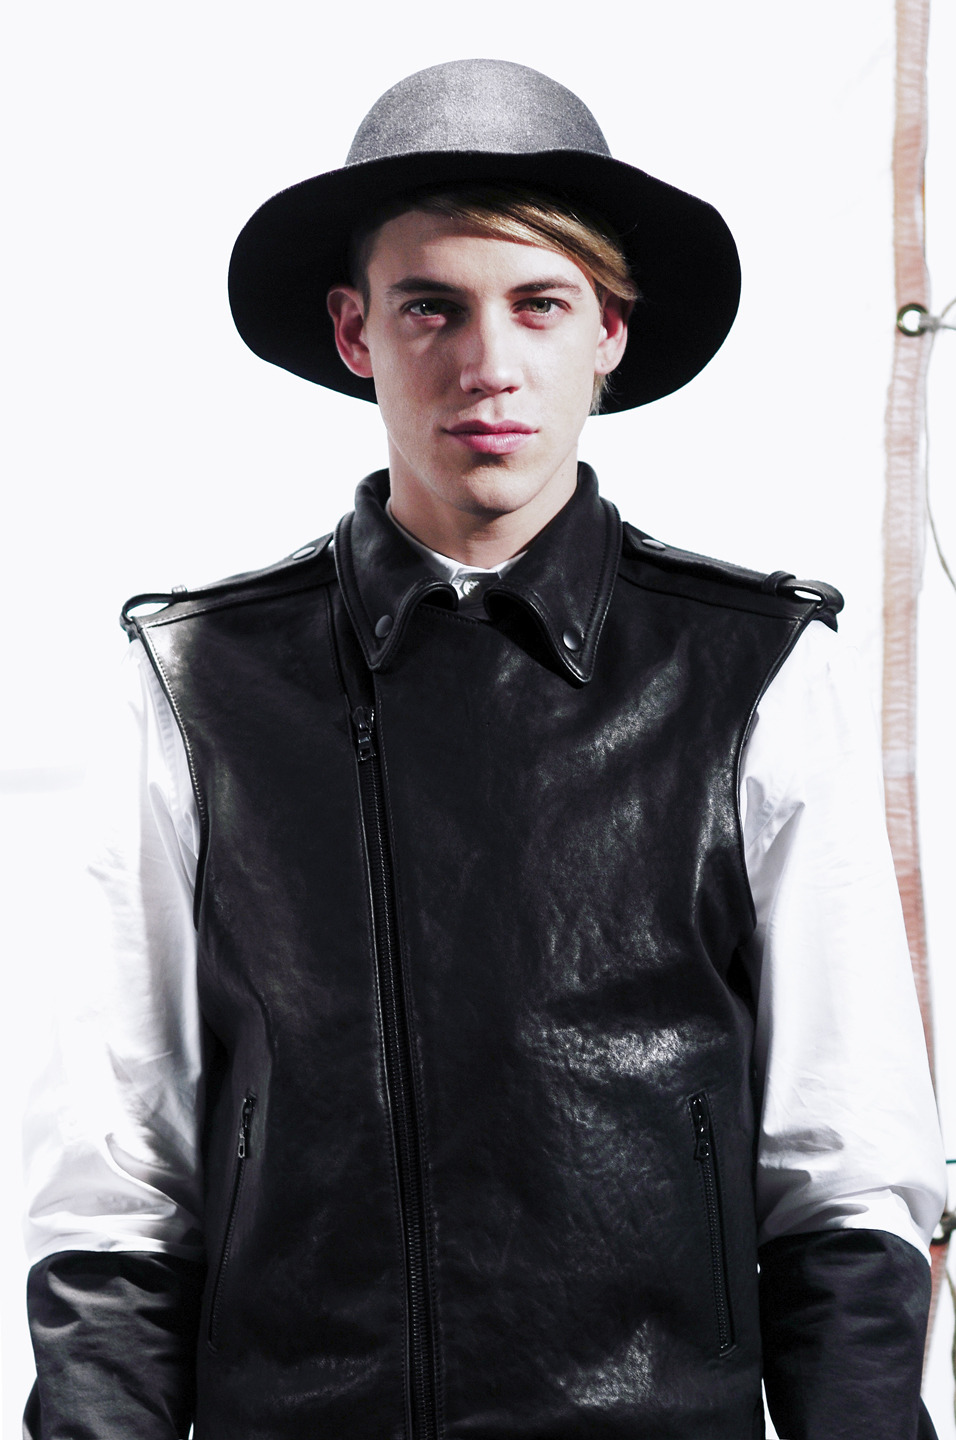 Eric at the Public School  FW '13 presentation @ Milk StudiosBy Miguel Yatco